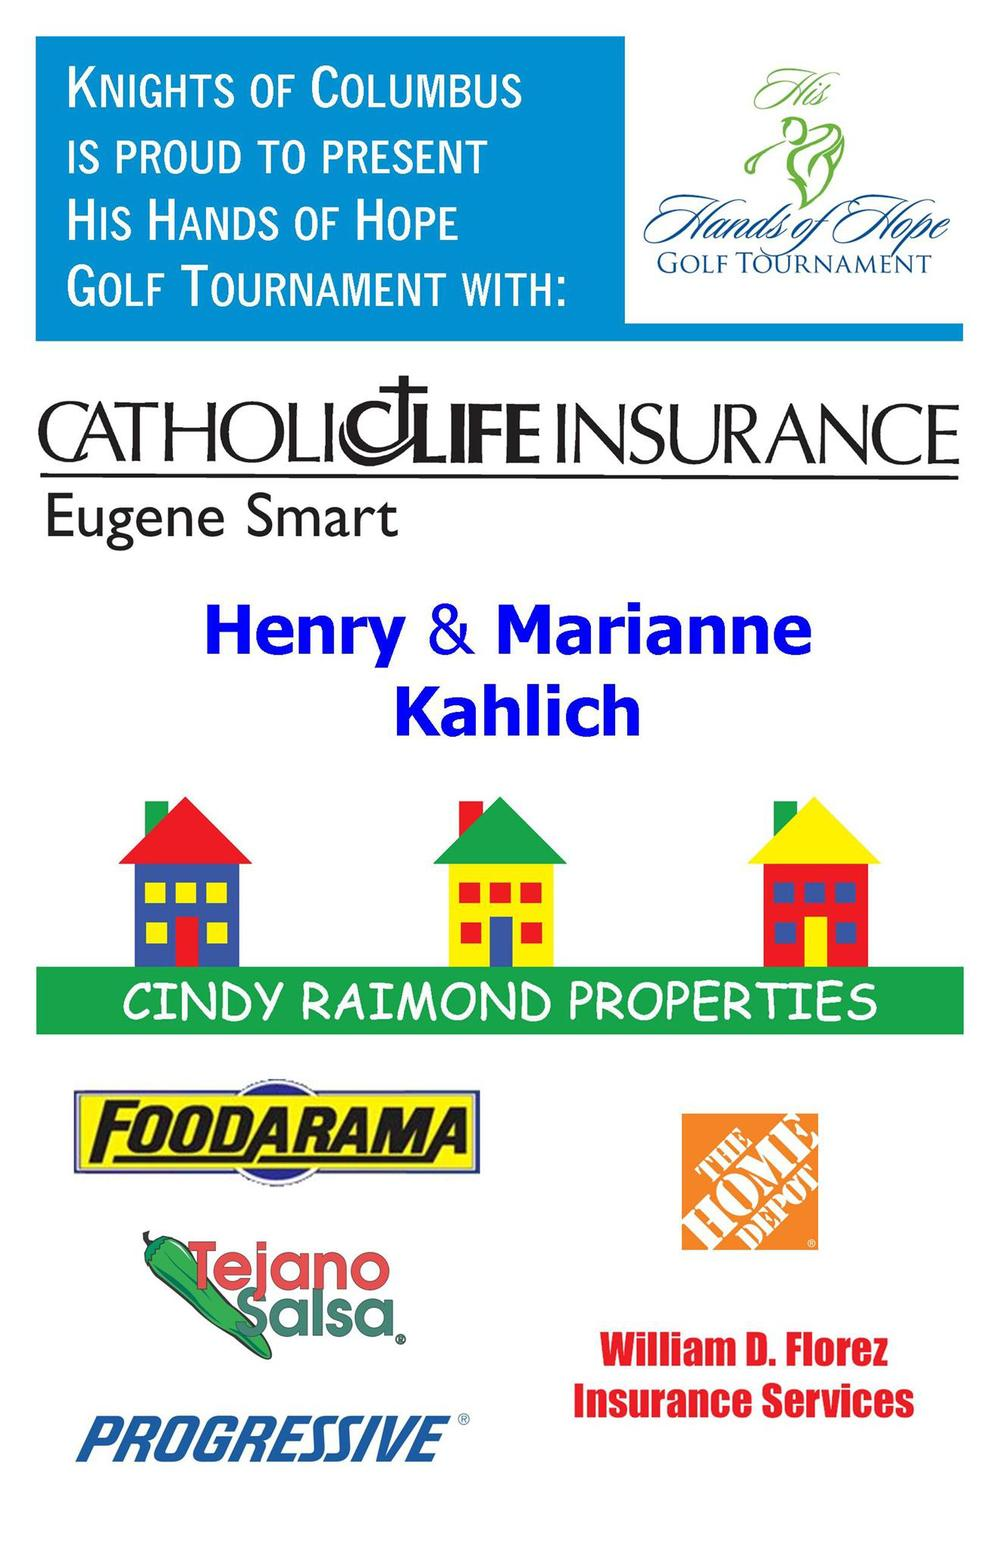 PAST SPONSORS - our 17th annual HHH Golf Tournament (aka 2014) Major Sponsors